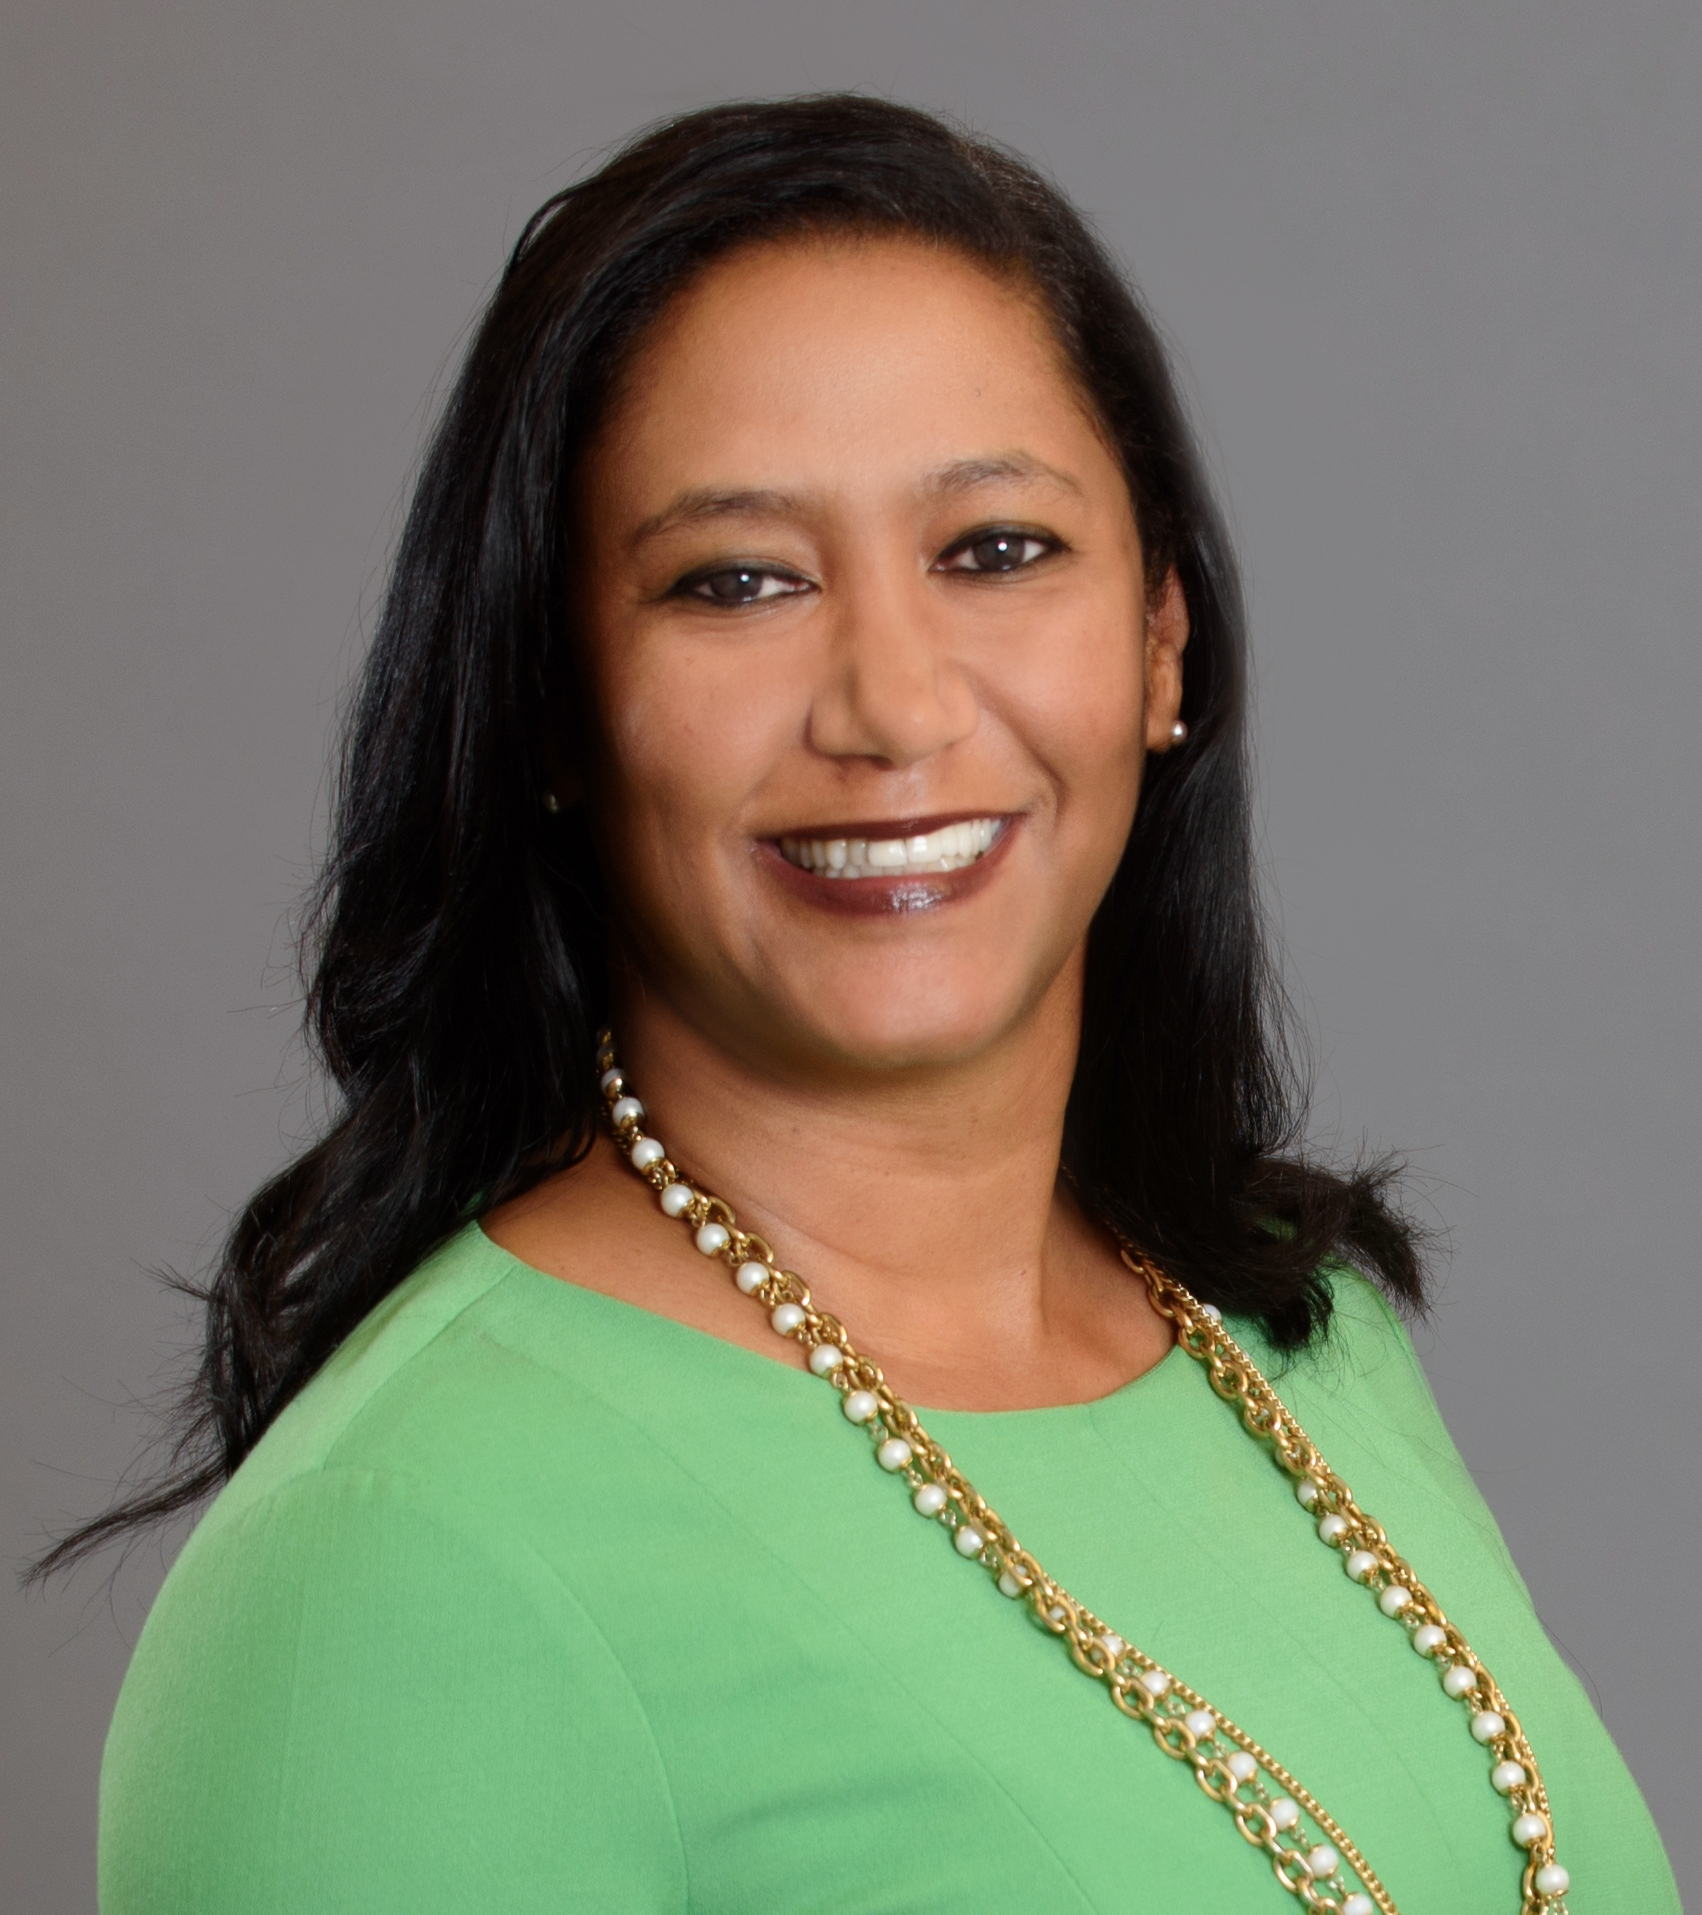 Headshot of Tiffany Carter, Director of Procurement